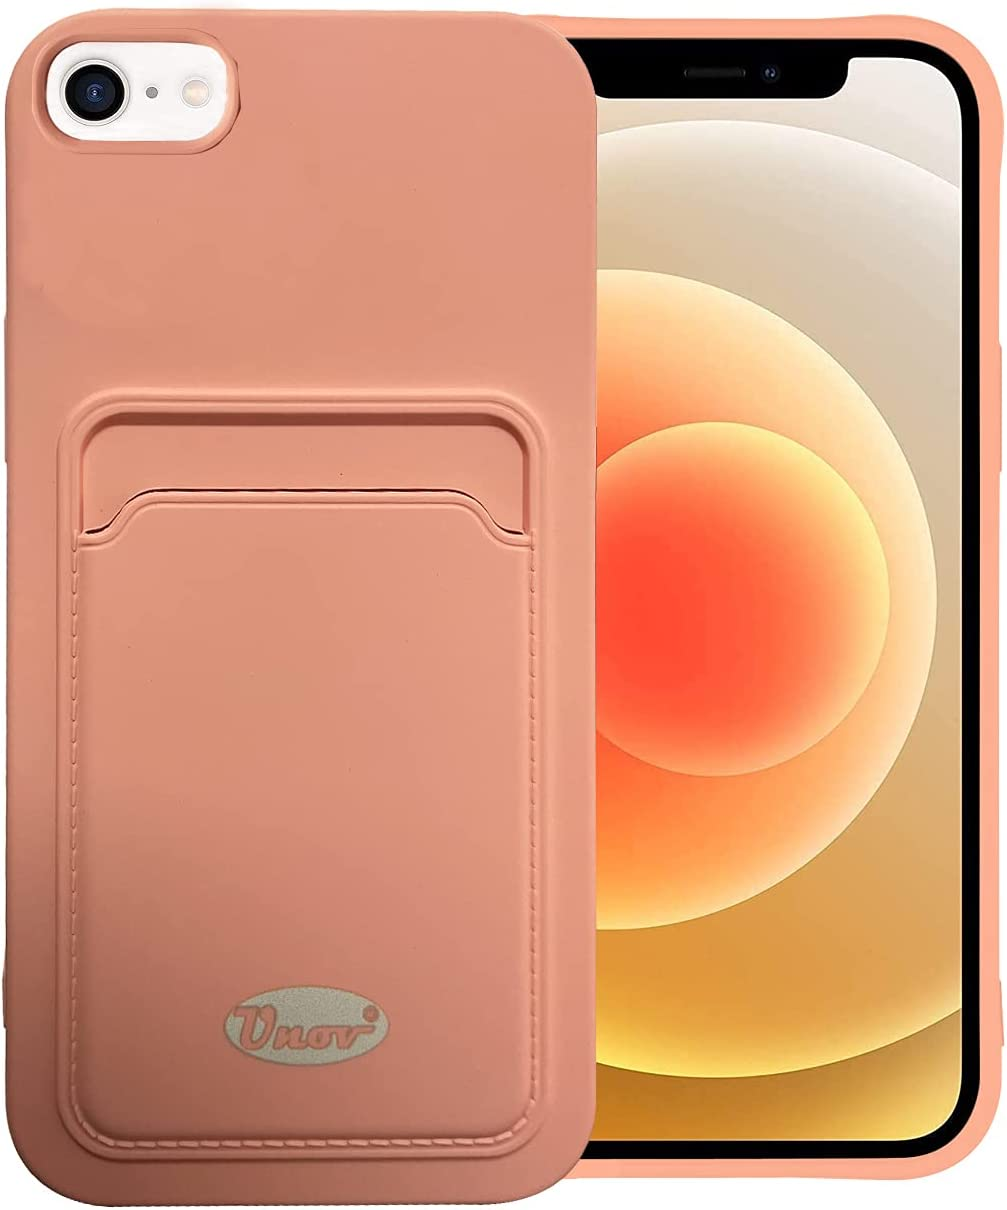 Unov Case Compatible with iPhone SE (2020) iPhone 8 iPhone 7 iPhone 6s iPhone 6 Soft Silicone Slim Protective Case with Card Holder Sleeve Wallet Card Pocket Cover Case (Bright Pink)